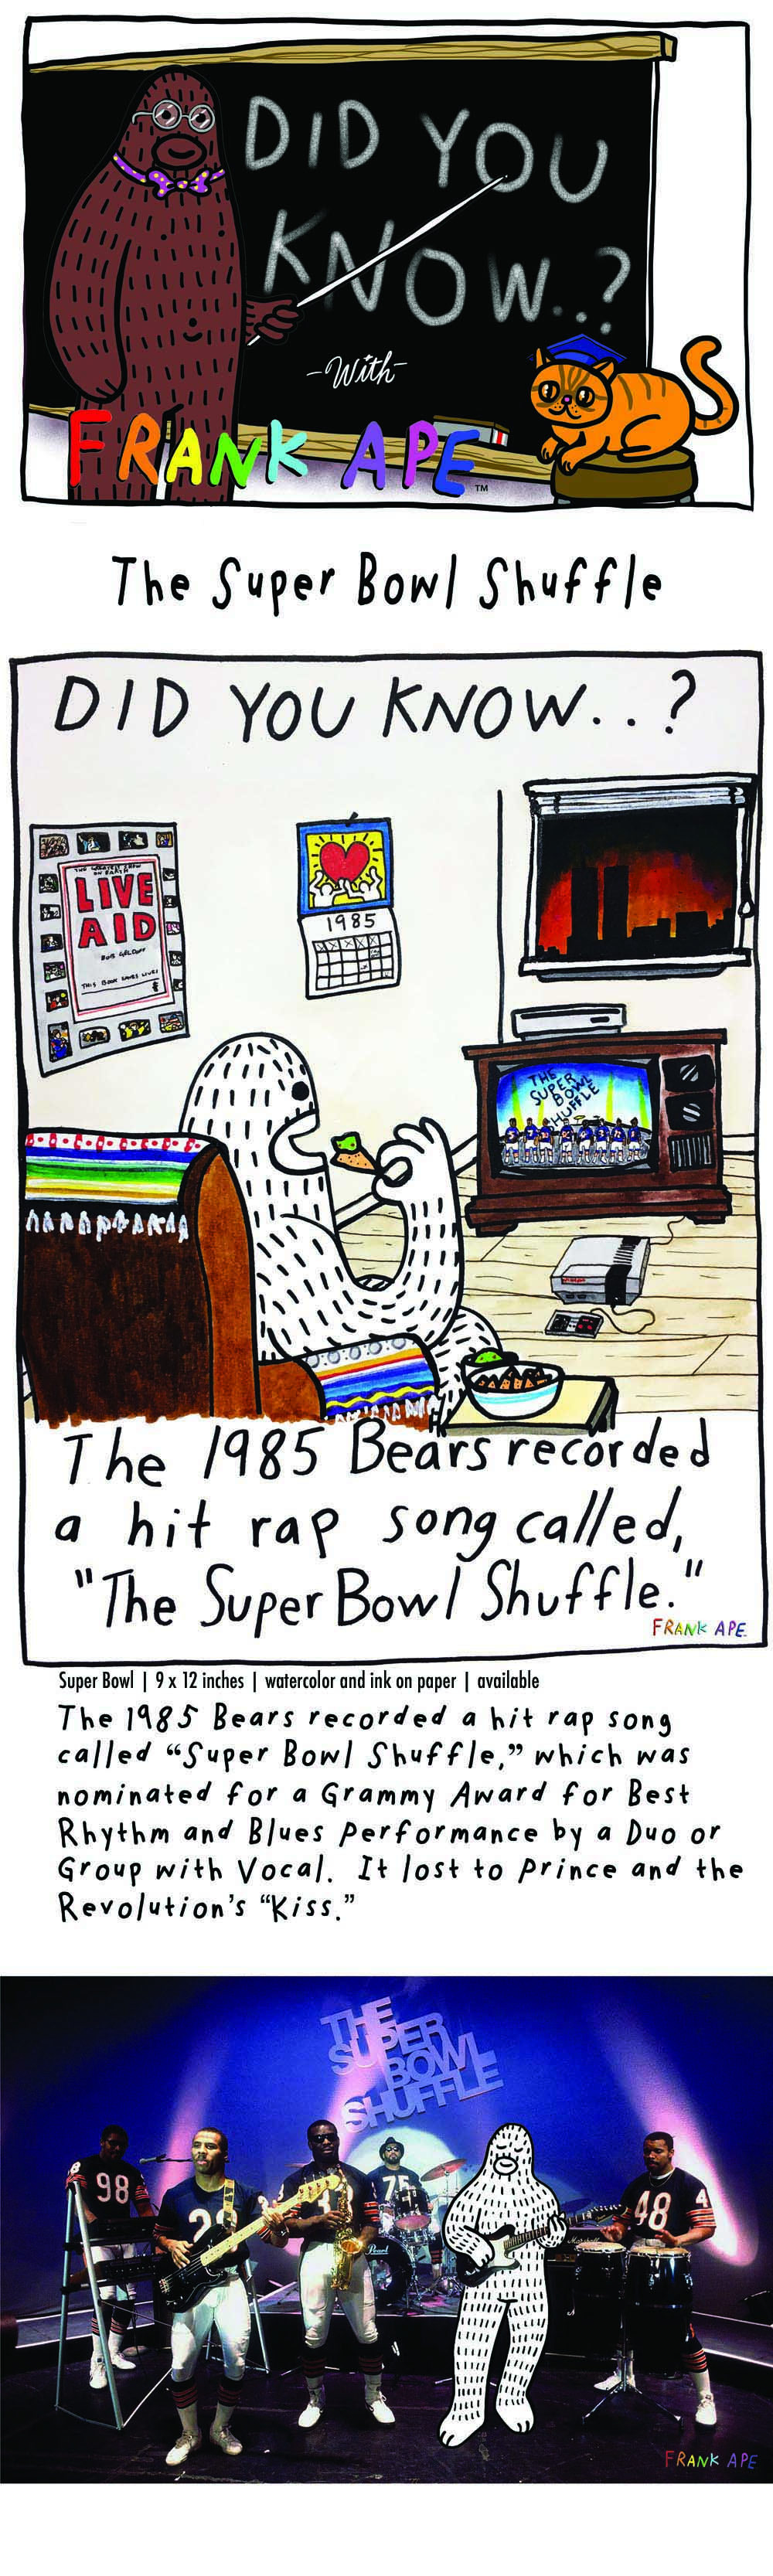 DYK - Super Bowl - Brandon Sines - Frank Ape - Feb 3 copy.jpg